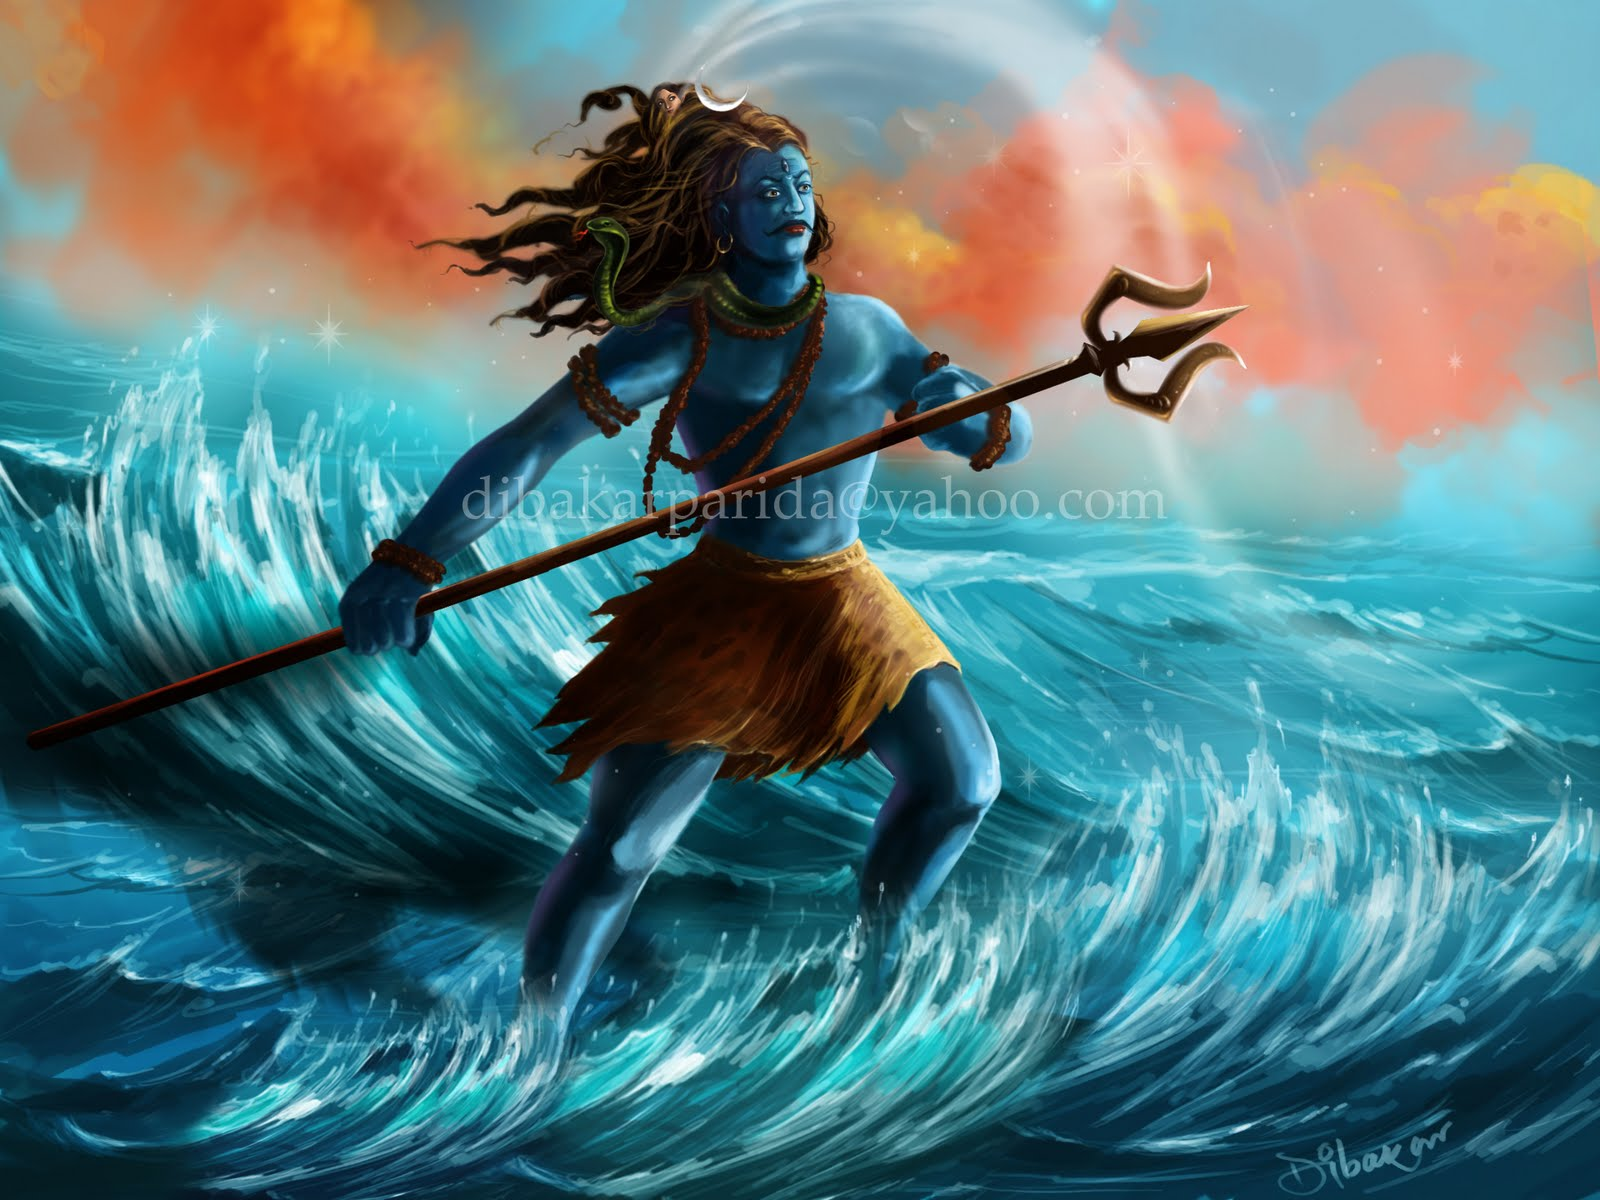 Wallpapers Lord Shiva Angry Photos Hd Kaal Bhairav 4: Dibakar Parida: Shiva